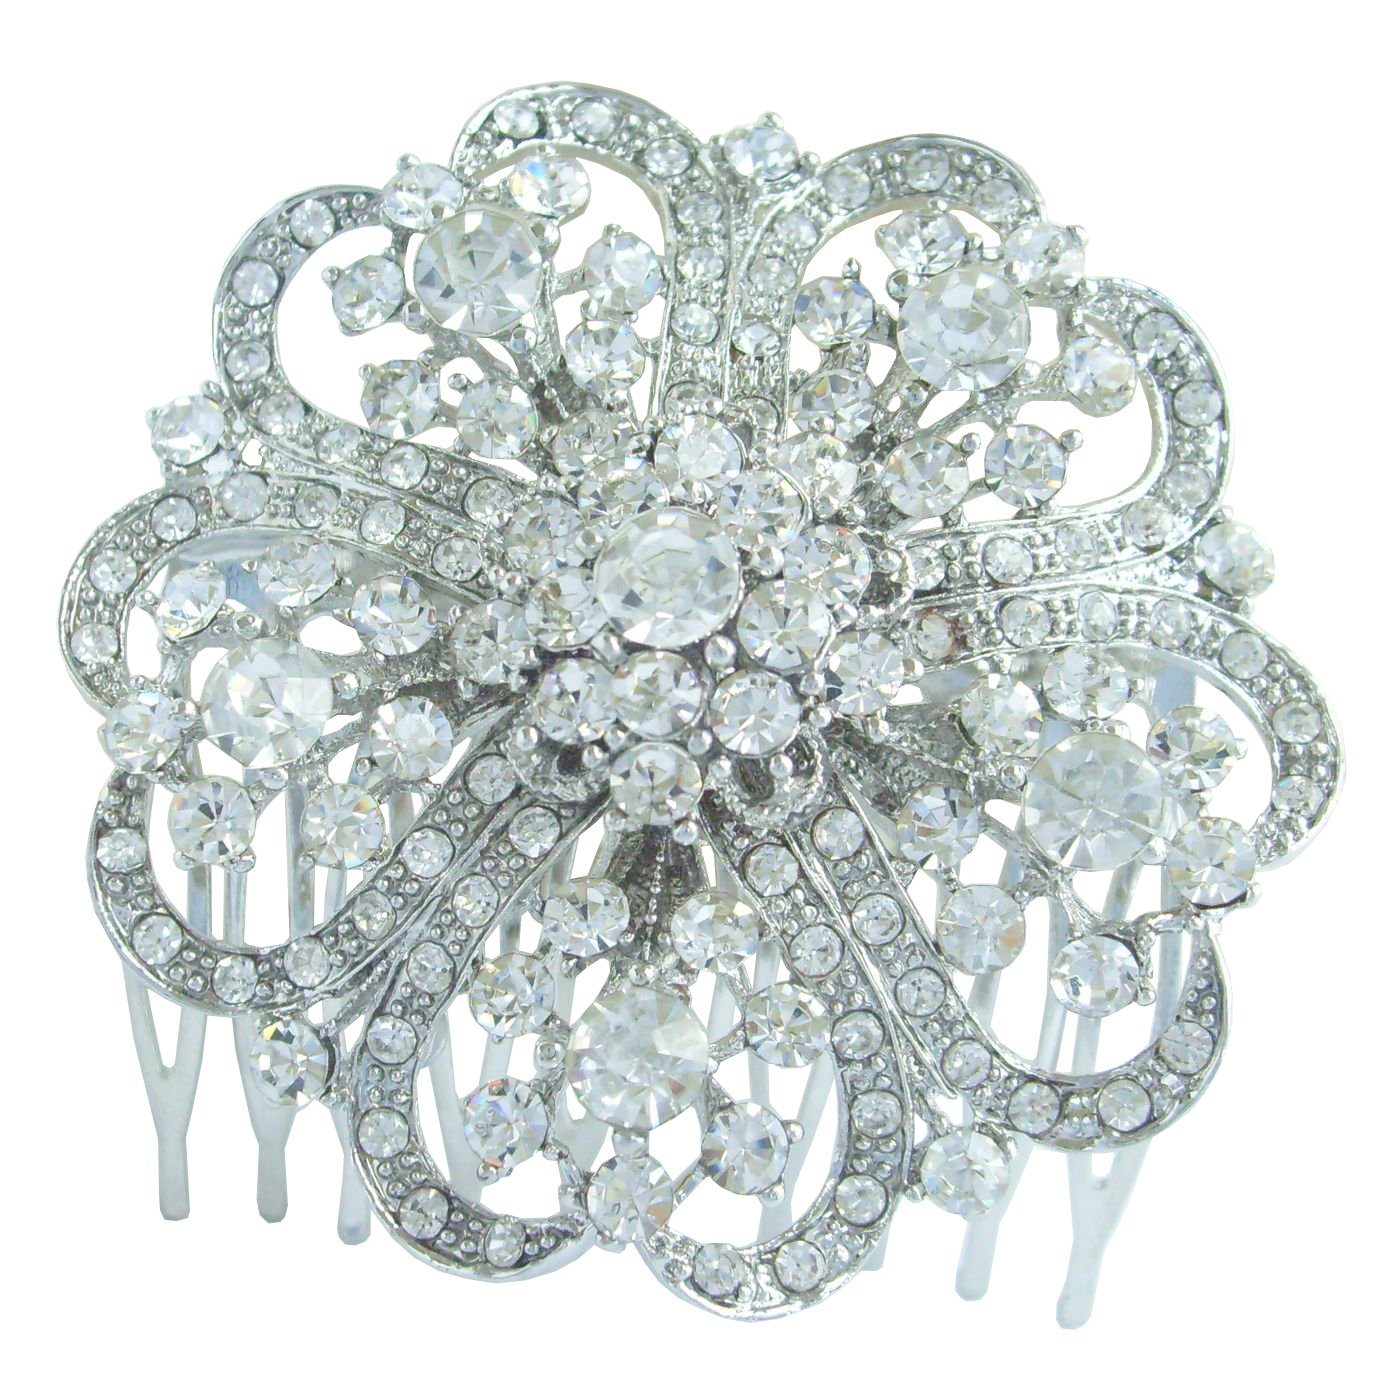 Sindary 2.36'' Silver Tone Flower Bridal Hair Comb Clear Rhinestone Crystal Wedding Headpiece HZ3609